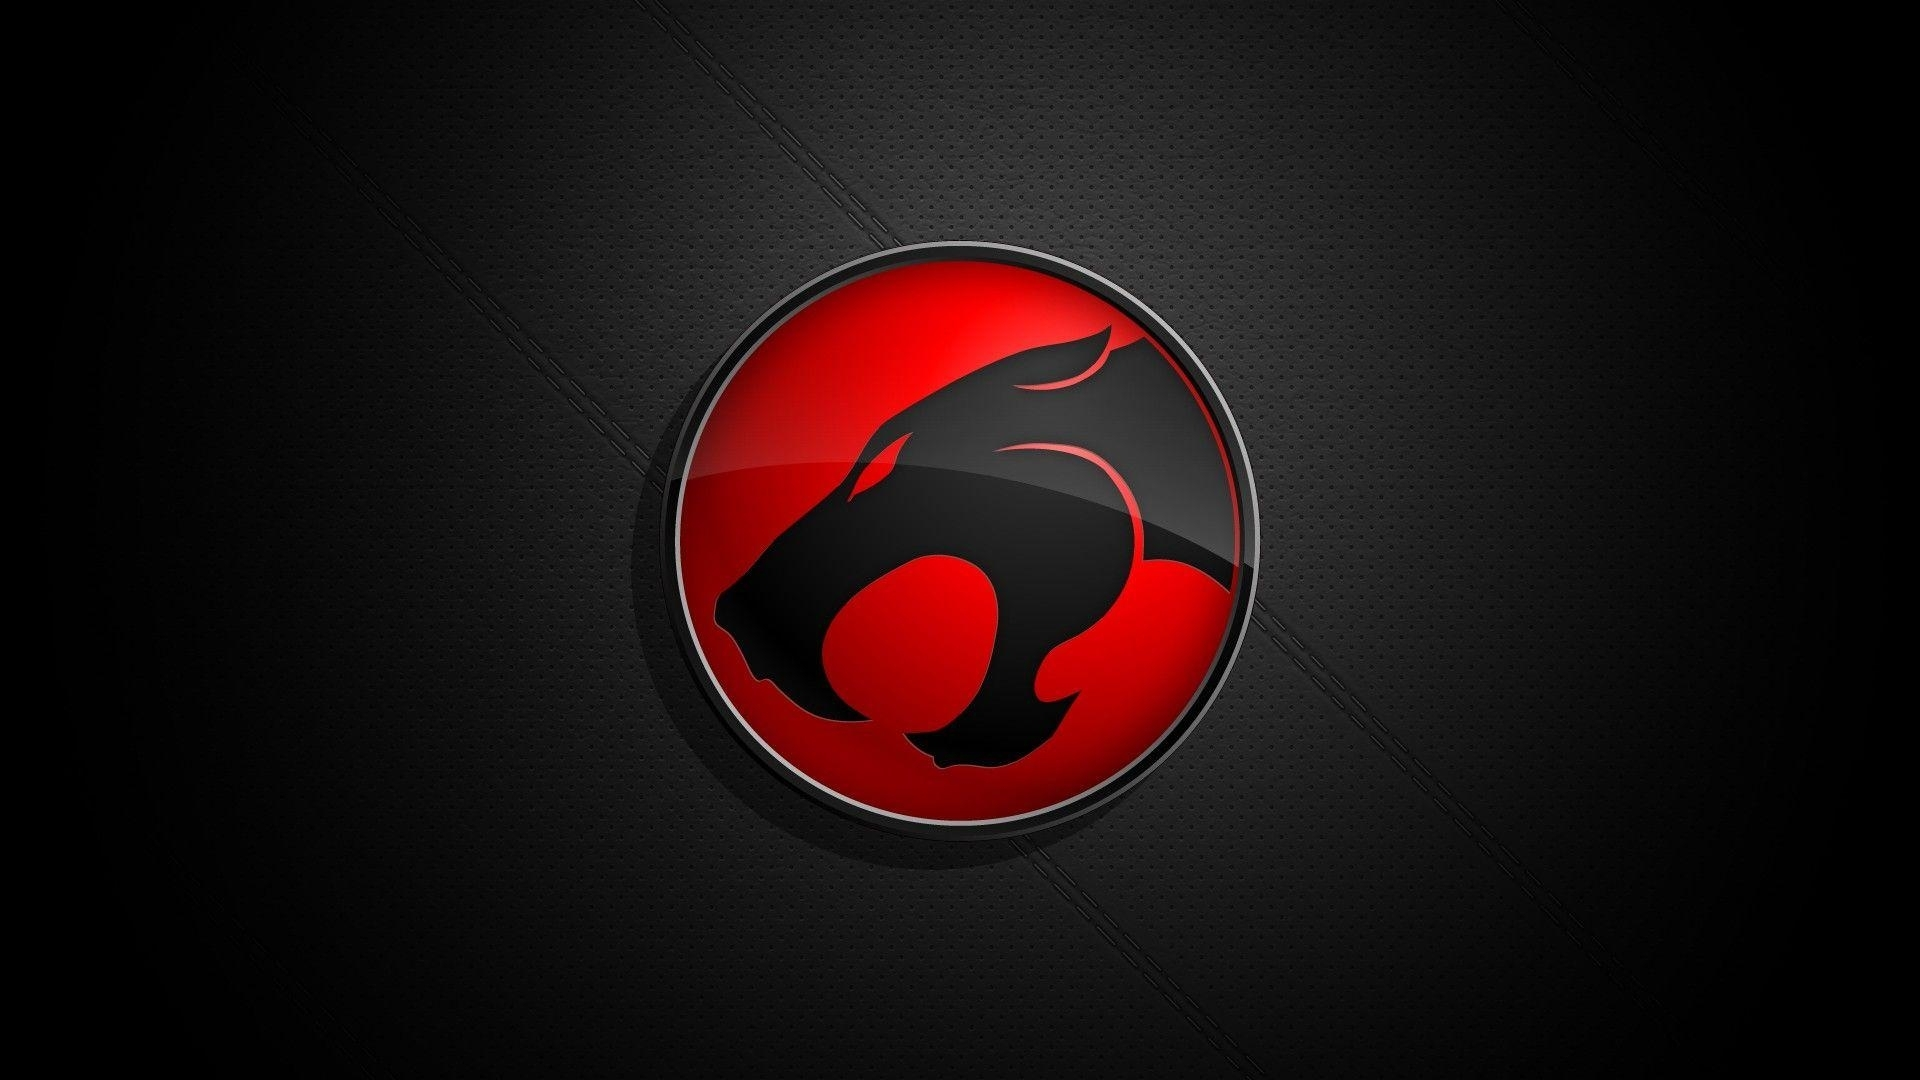 cool logo wallpapers - wallpaper cave